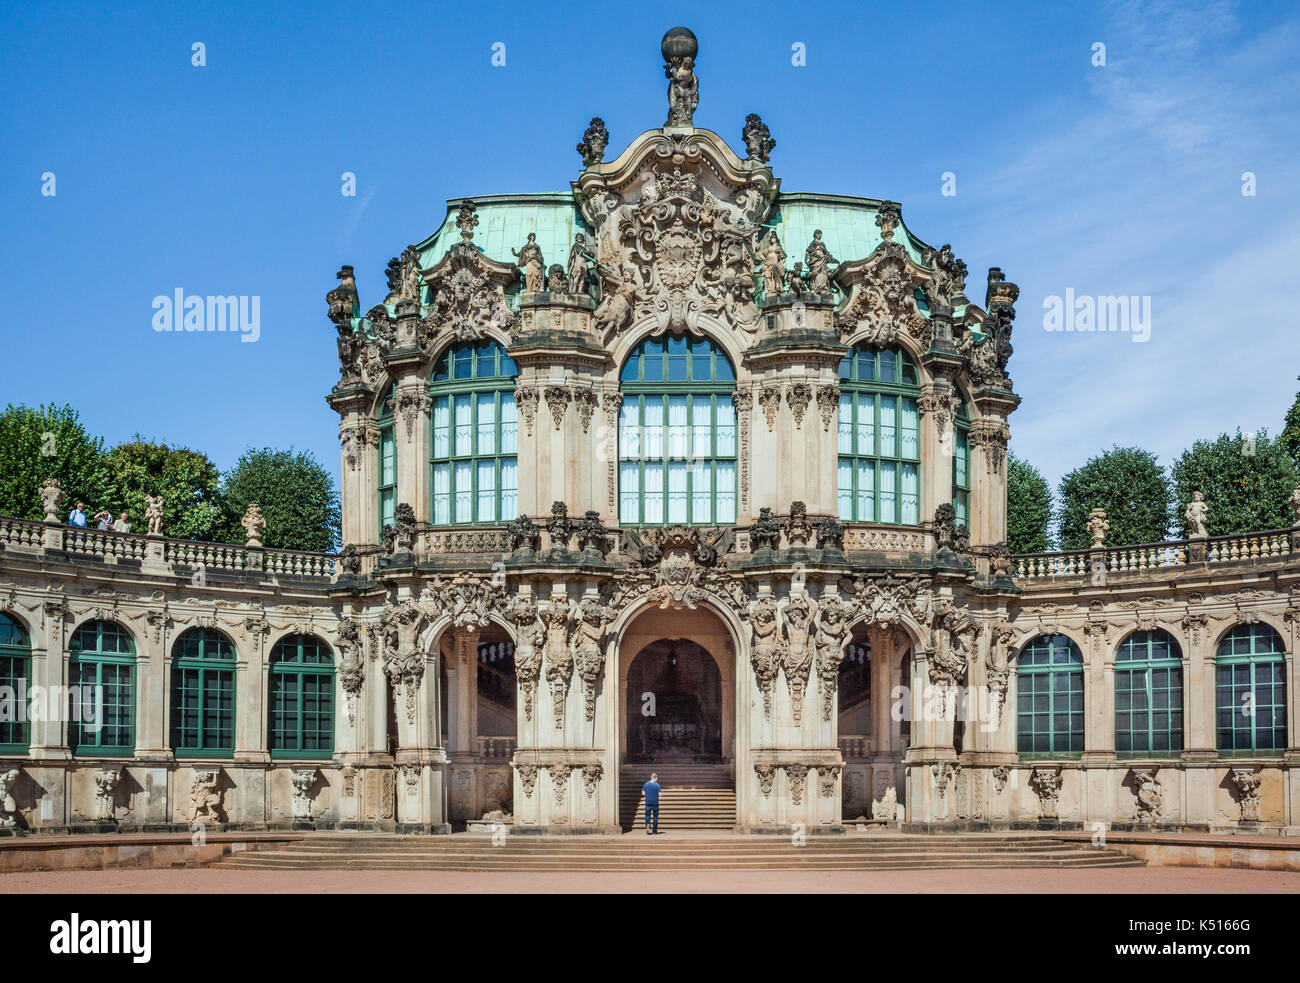 Germany, Saxony, Dresdener Zwinger, view of the Wall Pavillion - Stock Image